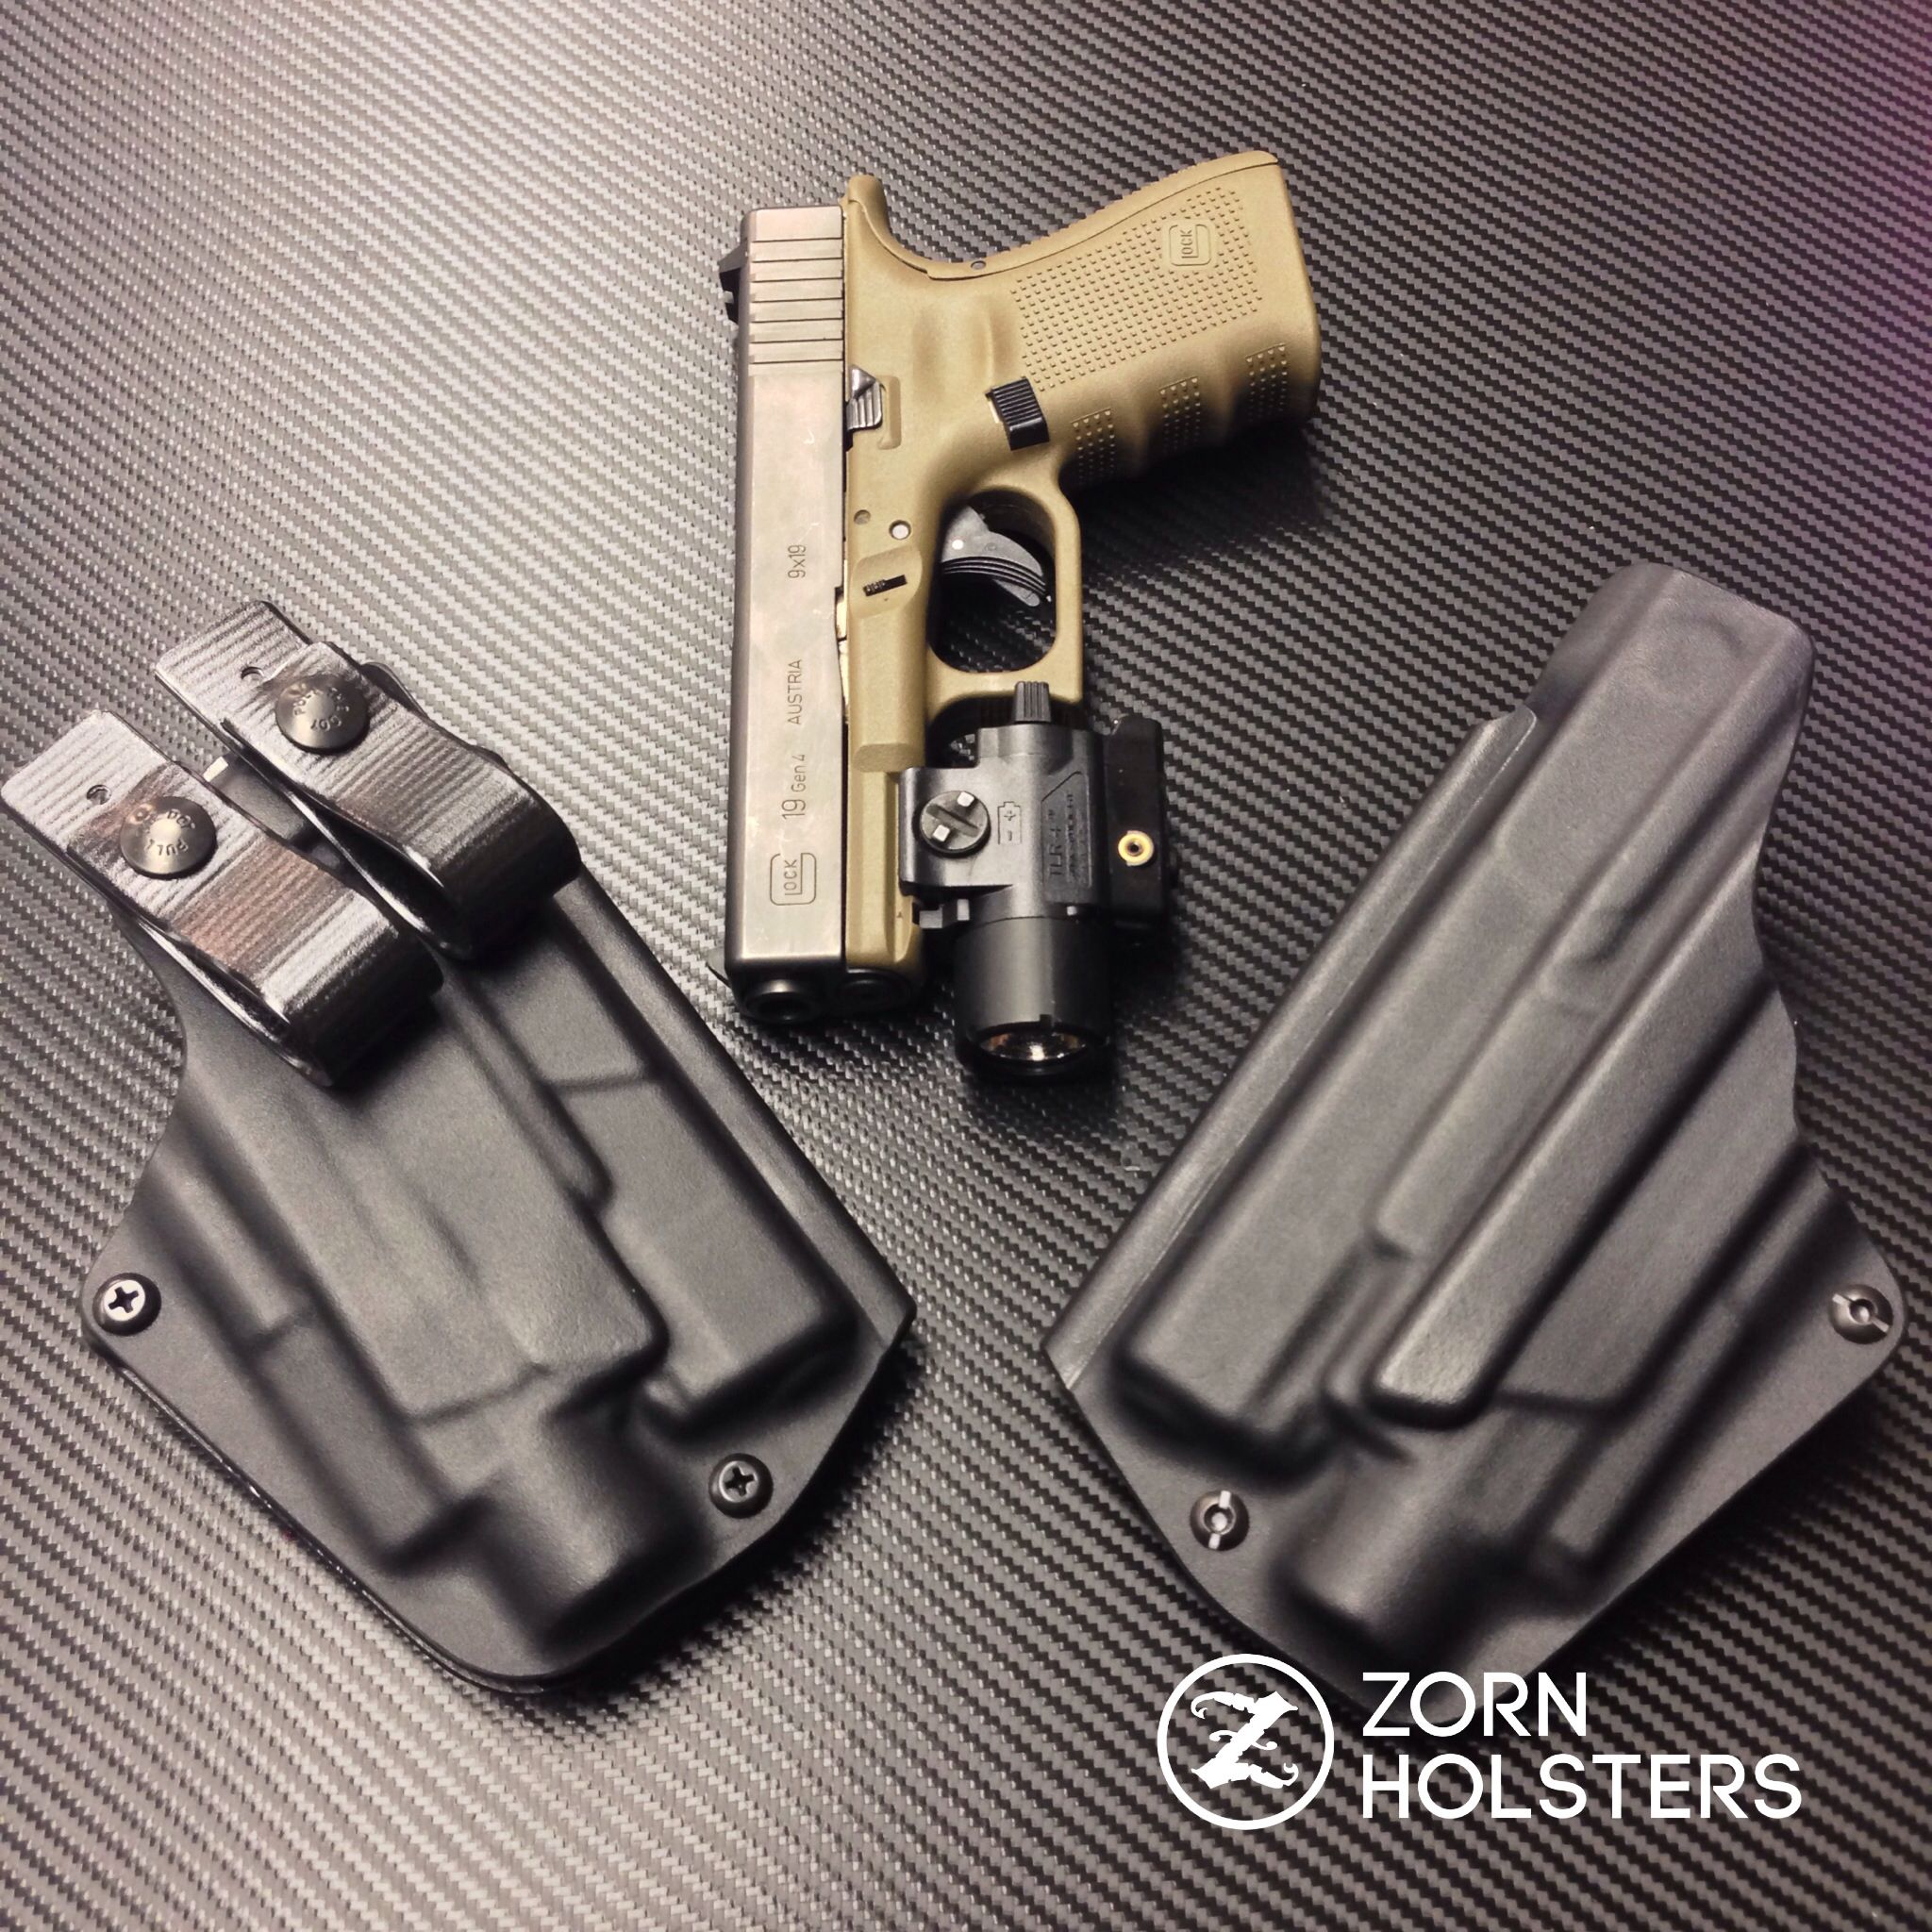 Wraith holsters for the Glock 19 with the Streamlight Tlr-4